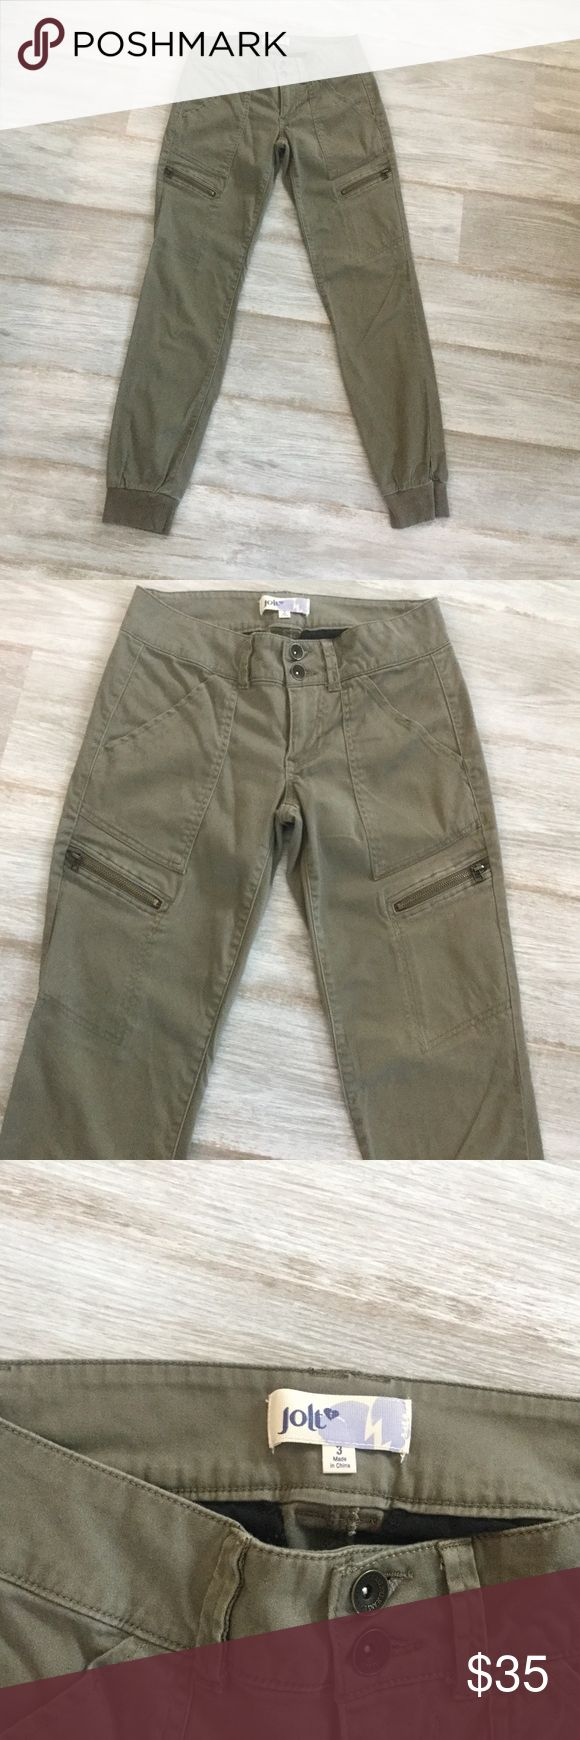 Jolt Green Joggers! Green Jolt Joggers. Perfect condition! Cargo style with cool zippers. Double button closure. 97% cotton, 3% spandex Jolt Pants